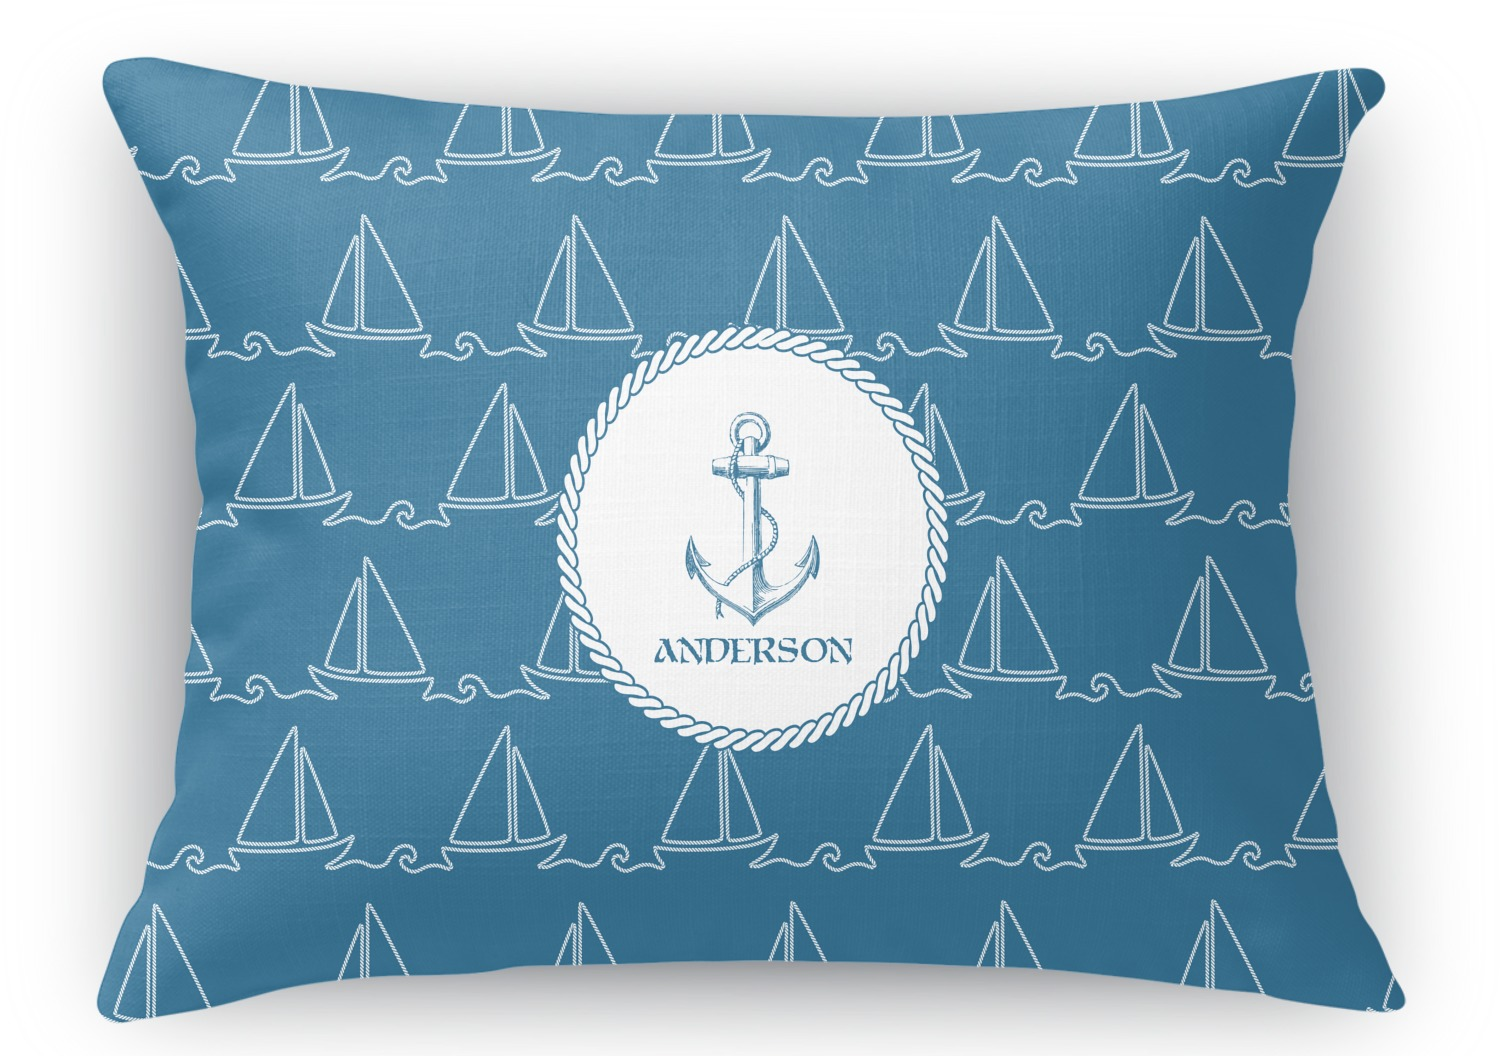 Decorative Pillows For Yachts : Rope Sail Boats Rectangular Throw Pillow - 18